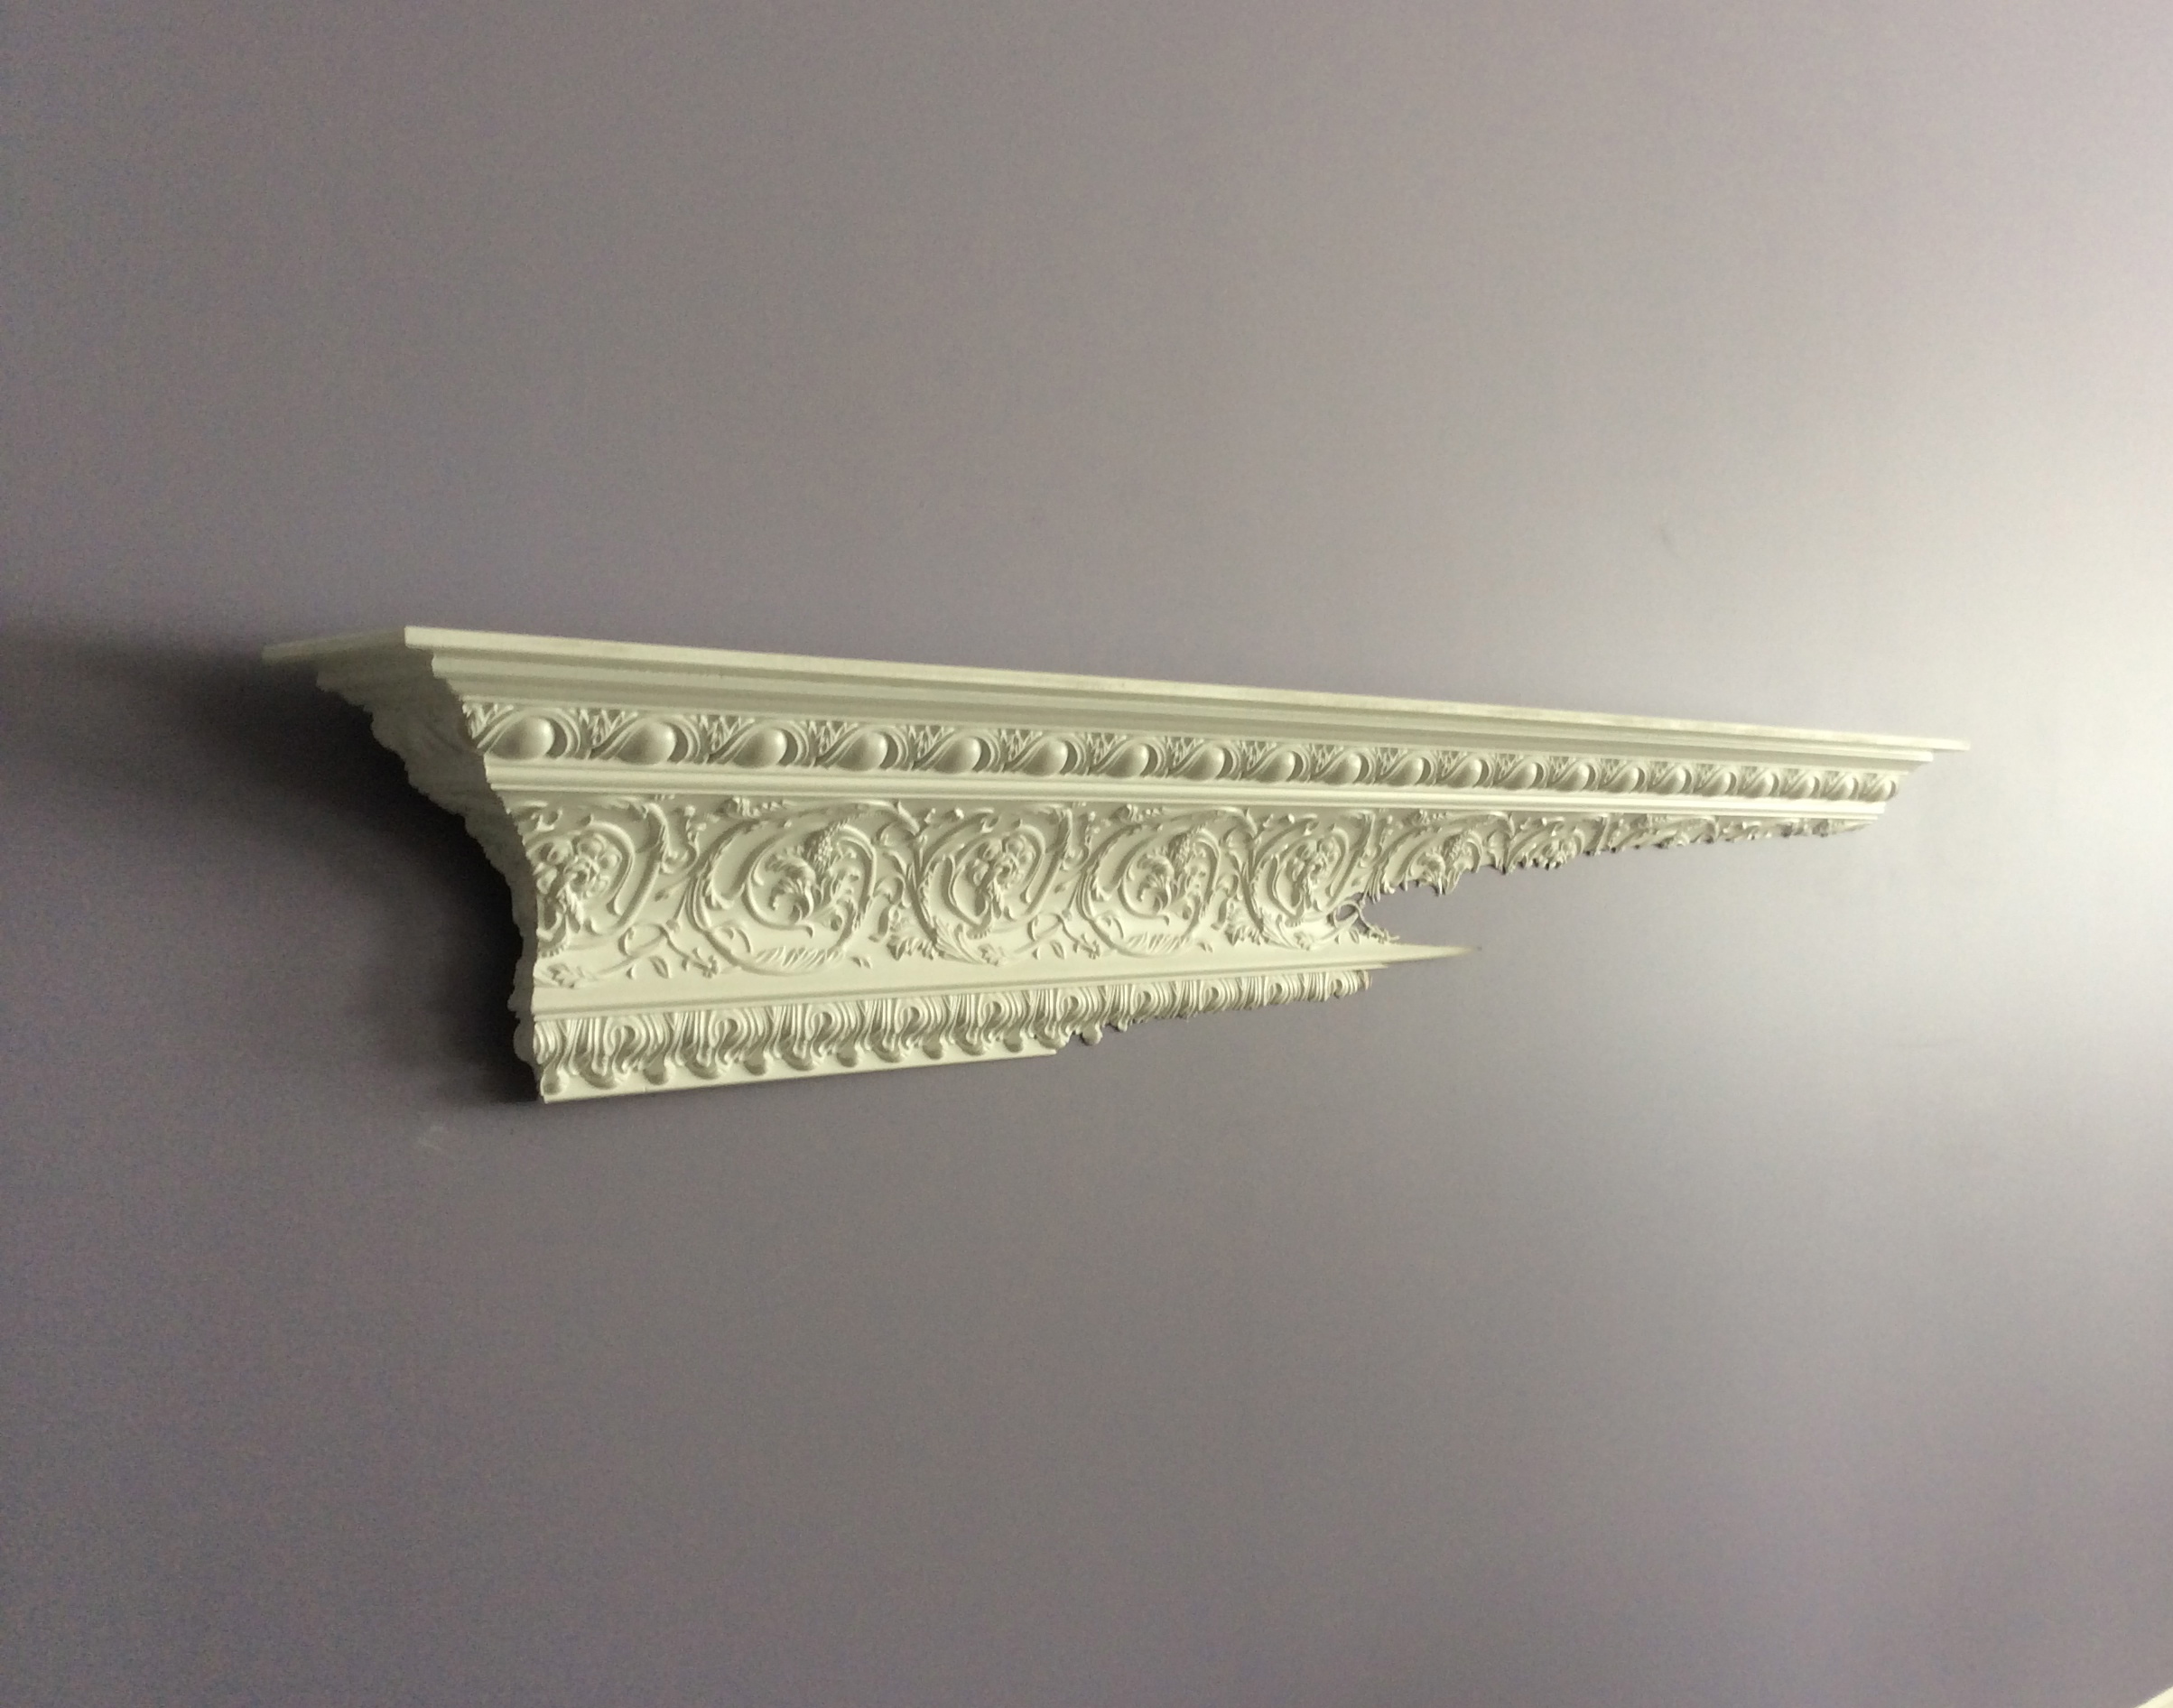 One of 3 disappearing wall shelves installed at our Shabby Chic Loft project.